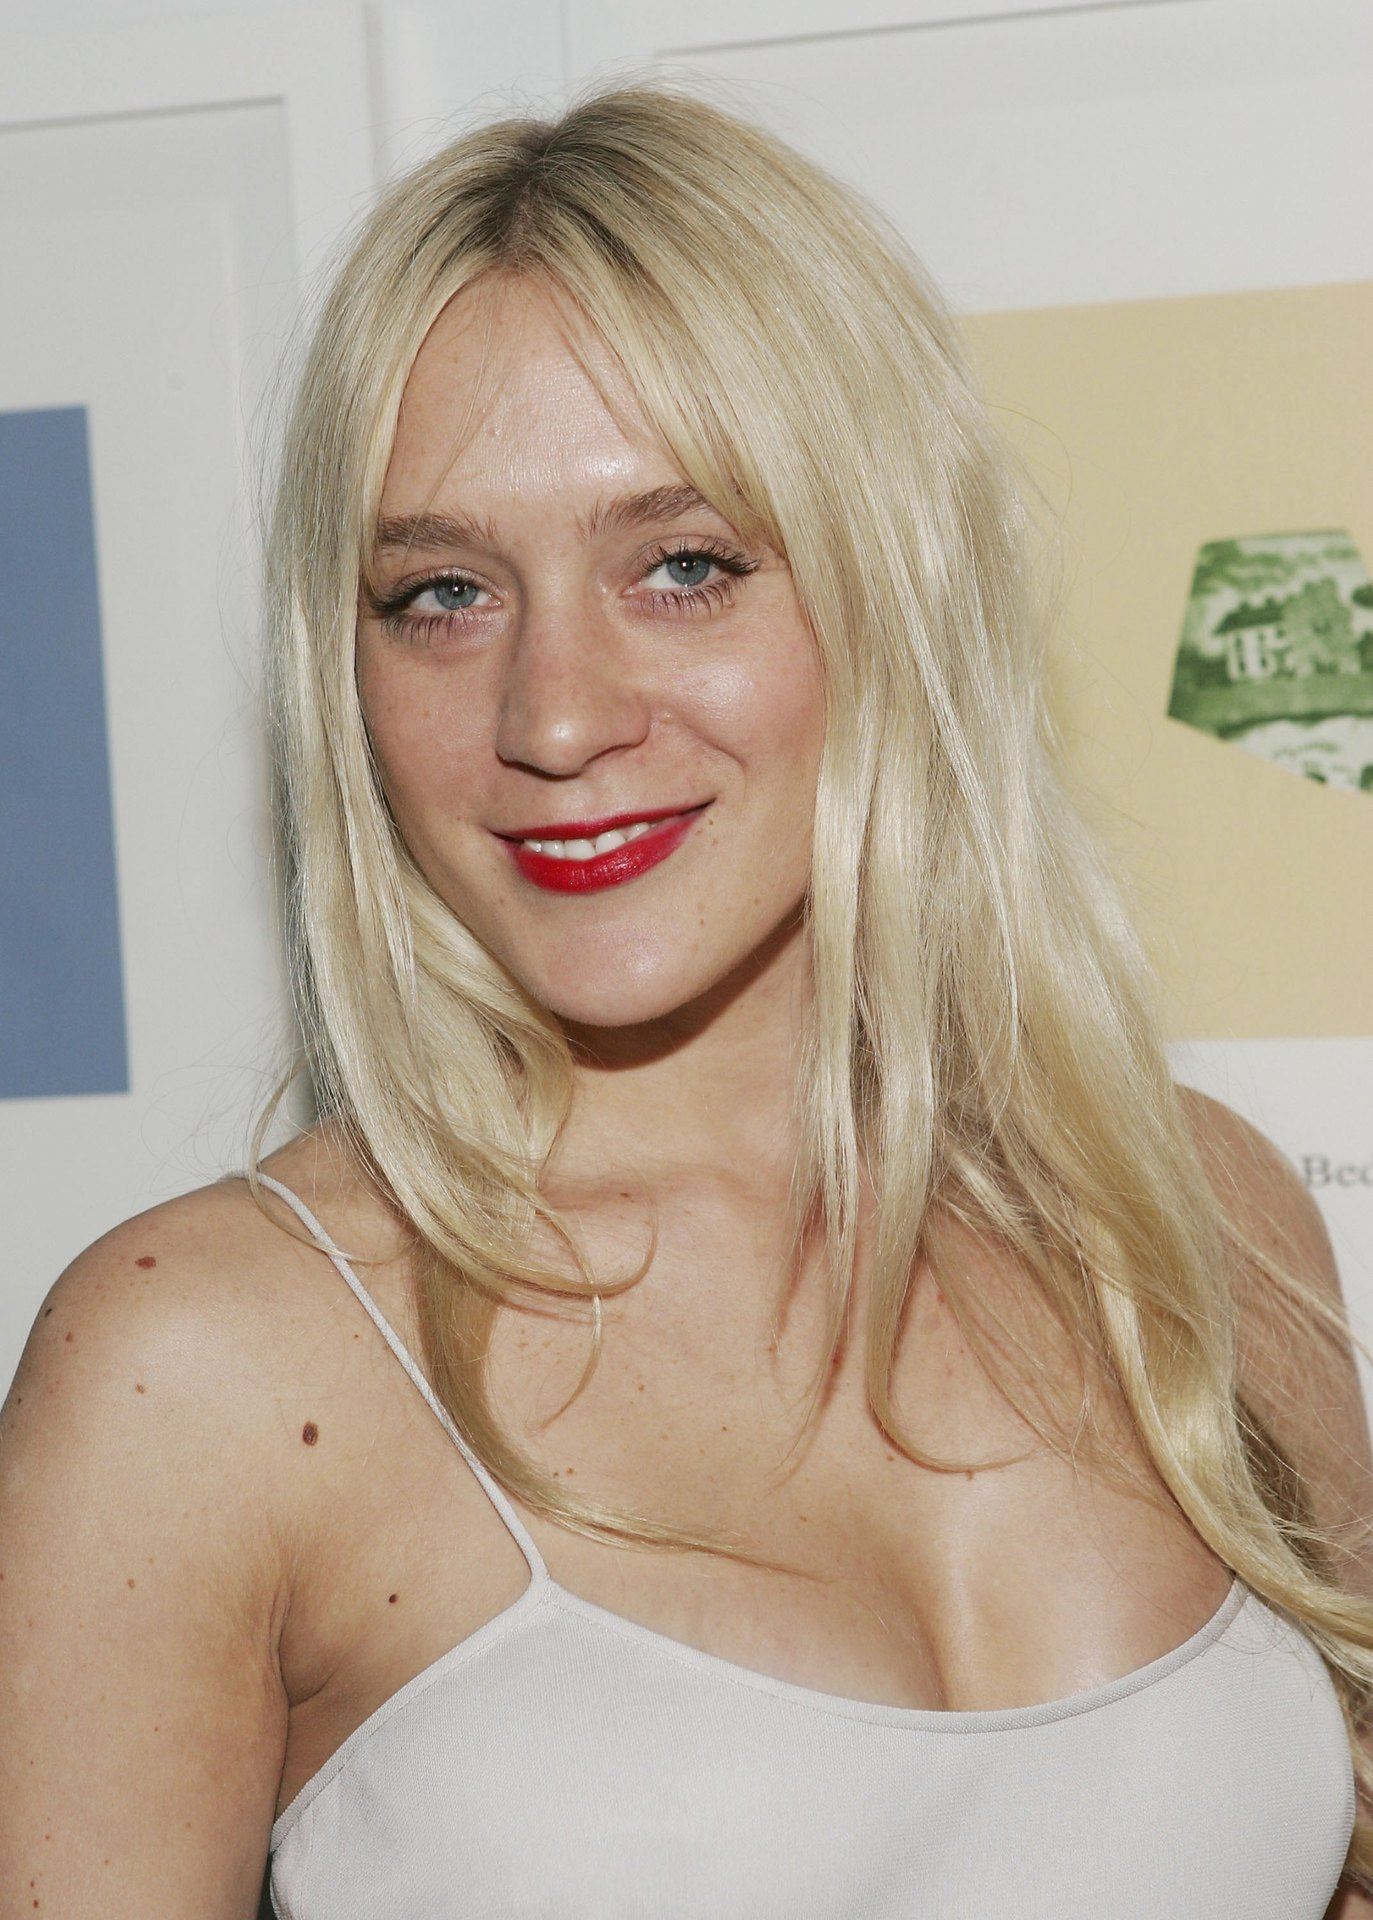 Chloë Sevigny - 2018 Light Blond hair & chic hair style. Current length:  long hair (bra strap length)